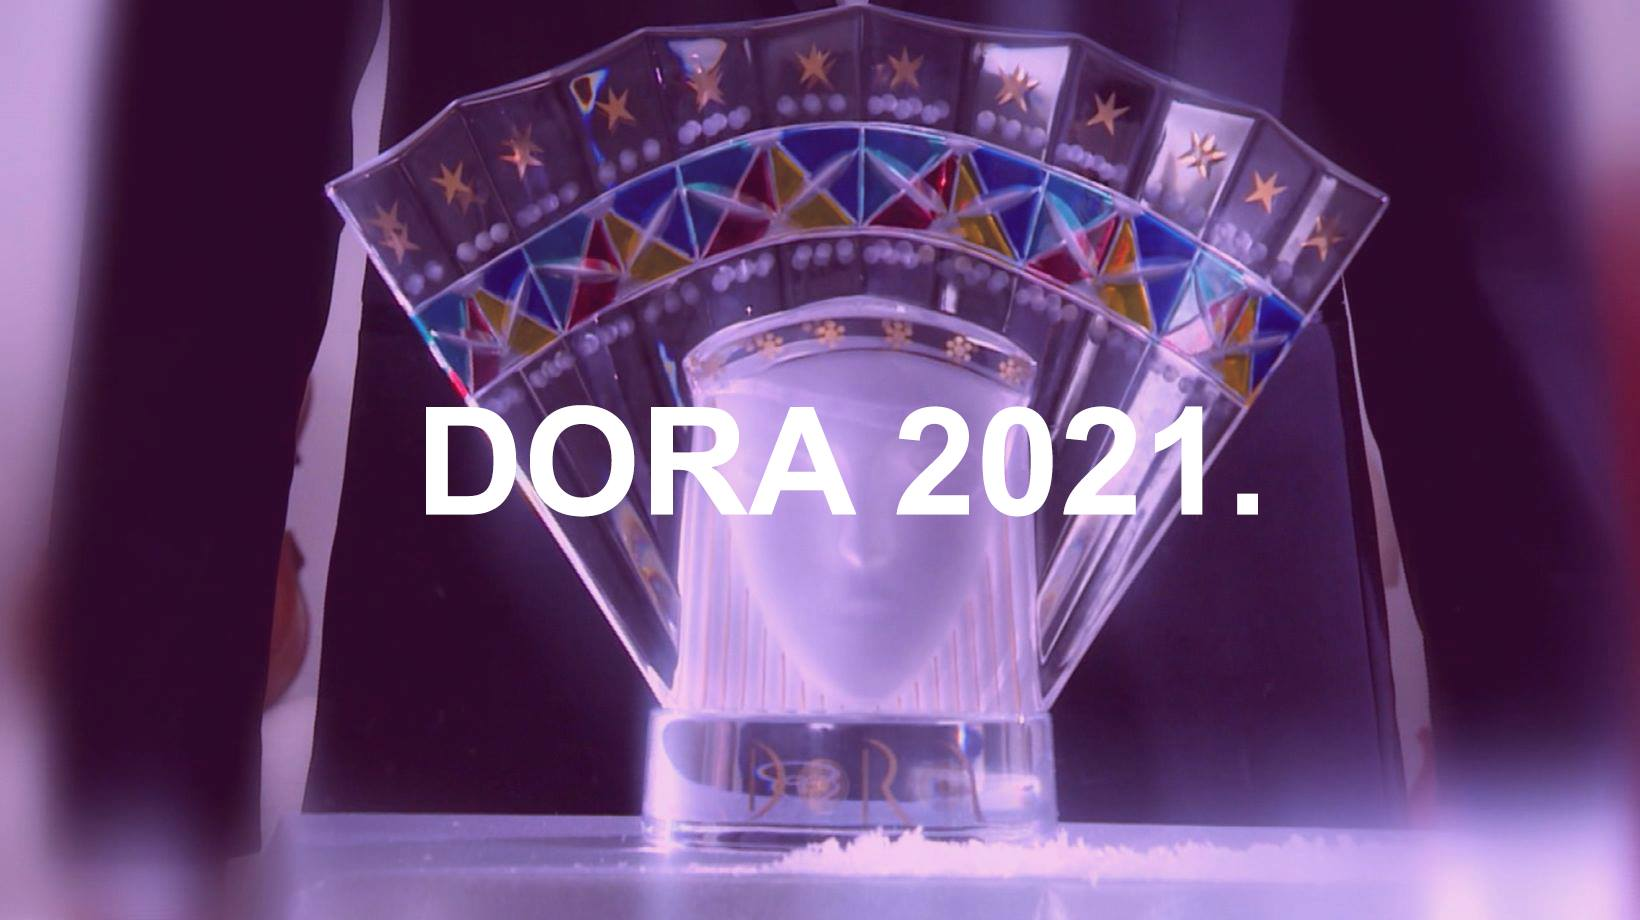 Croatia: HRT begins Dora 2021 national final process